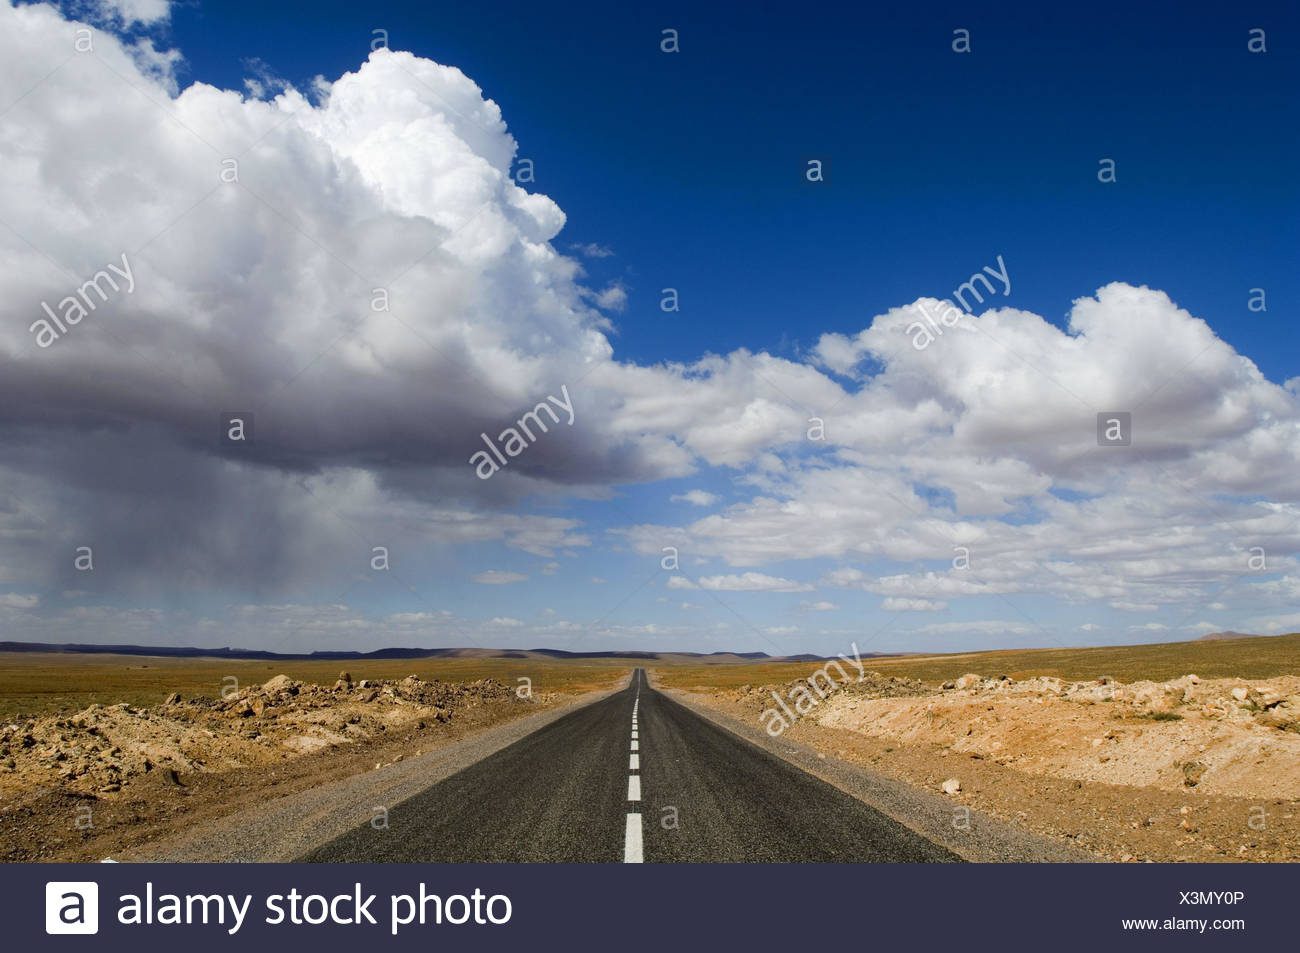 Morocco, Ouarzazate, country road, cloudy sky, Africa, North Africa, scenery, width, distance, horizon, level, vanishing point, vanishing point perspective, central perspective, sky, clouds, loneliness, outside, deserted, - Stock Image